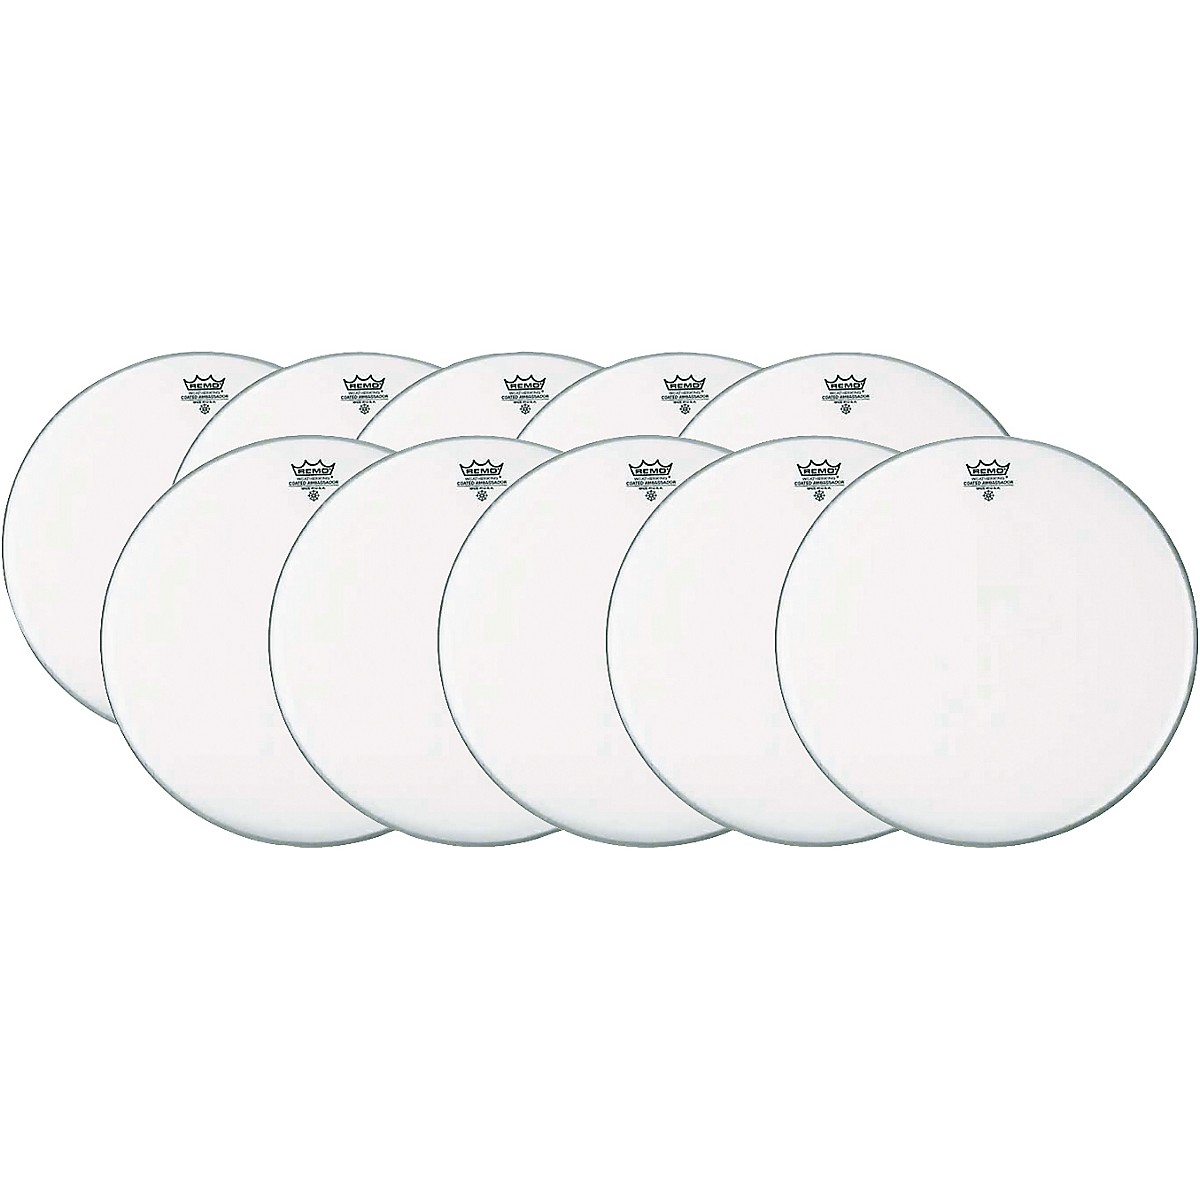 Remo Ambassador Coated Snare Head 14 Inch 10-Pack